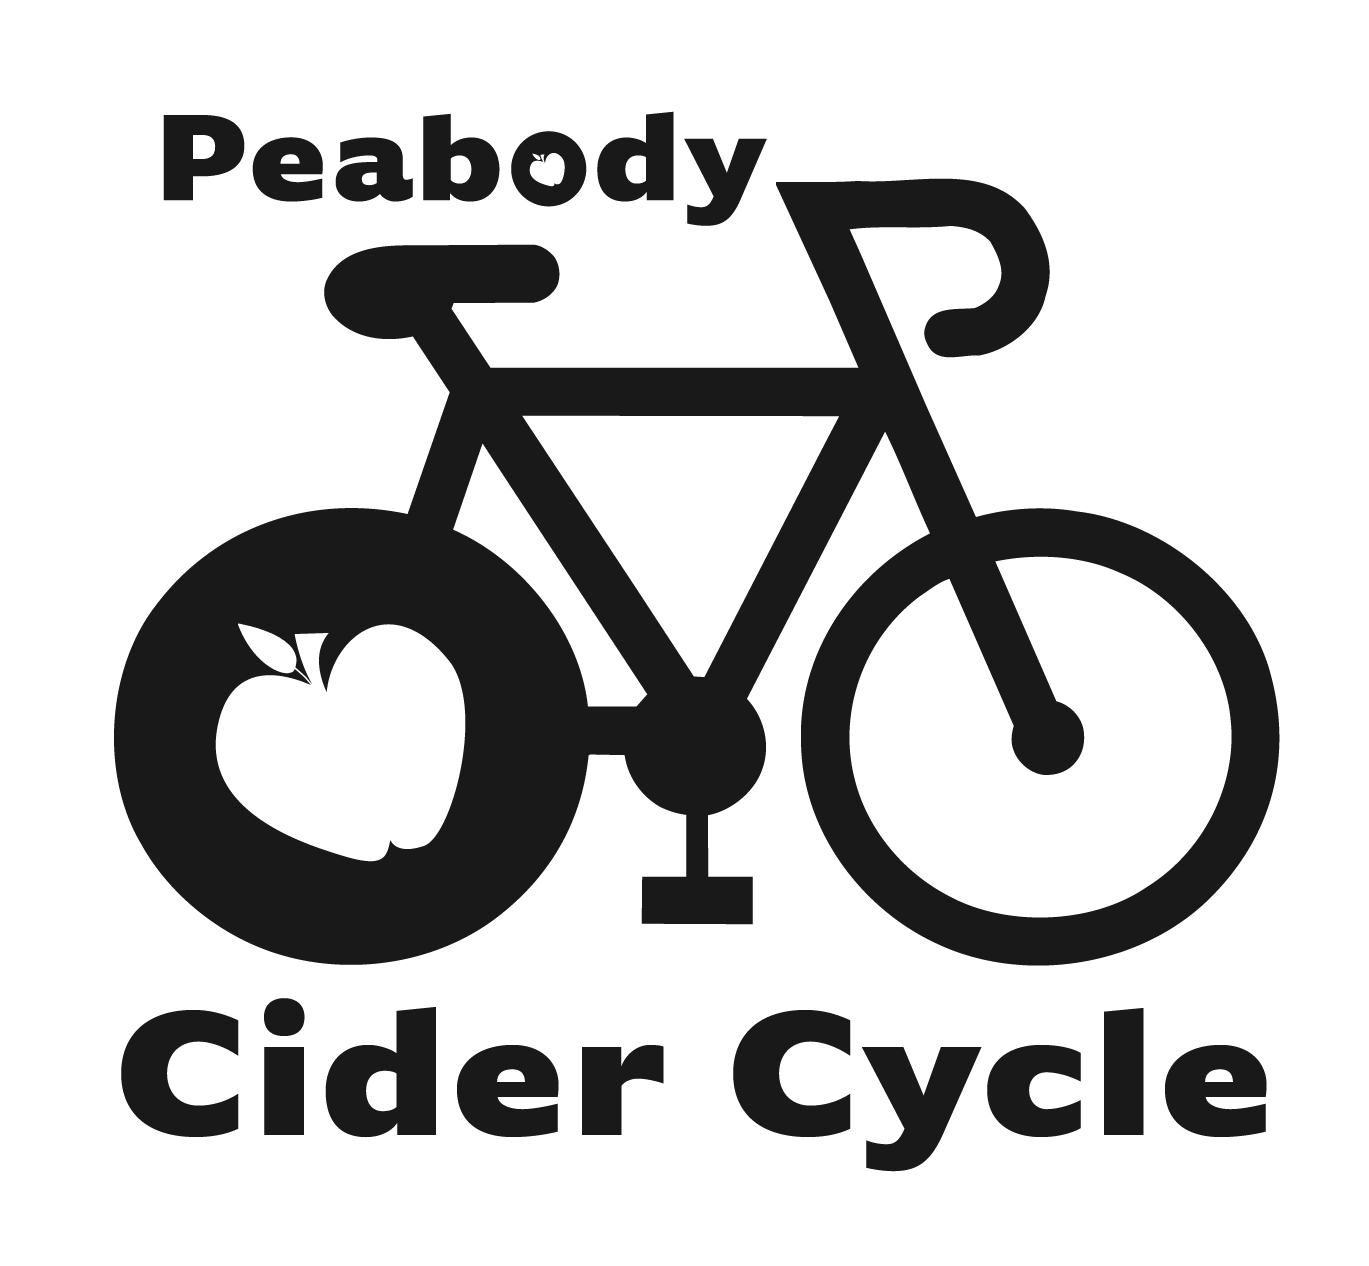 Cider Cycle Logo Black .png